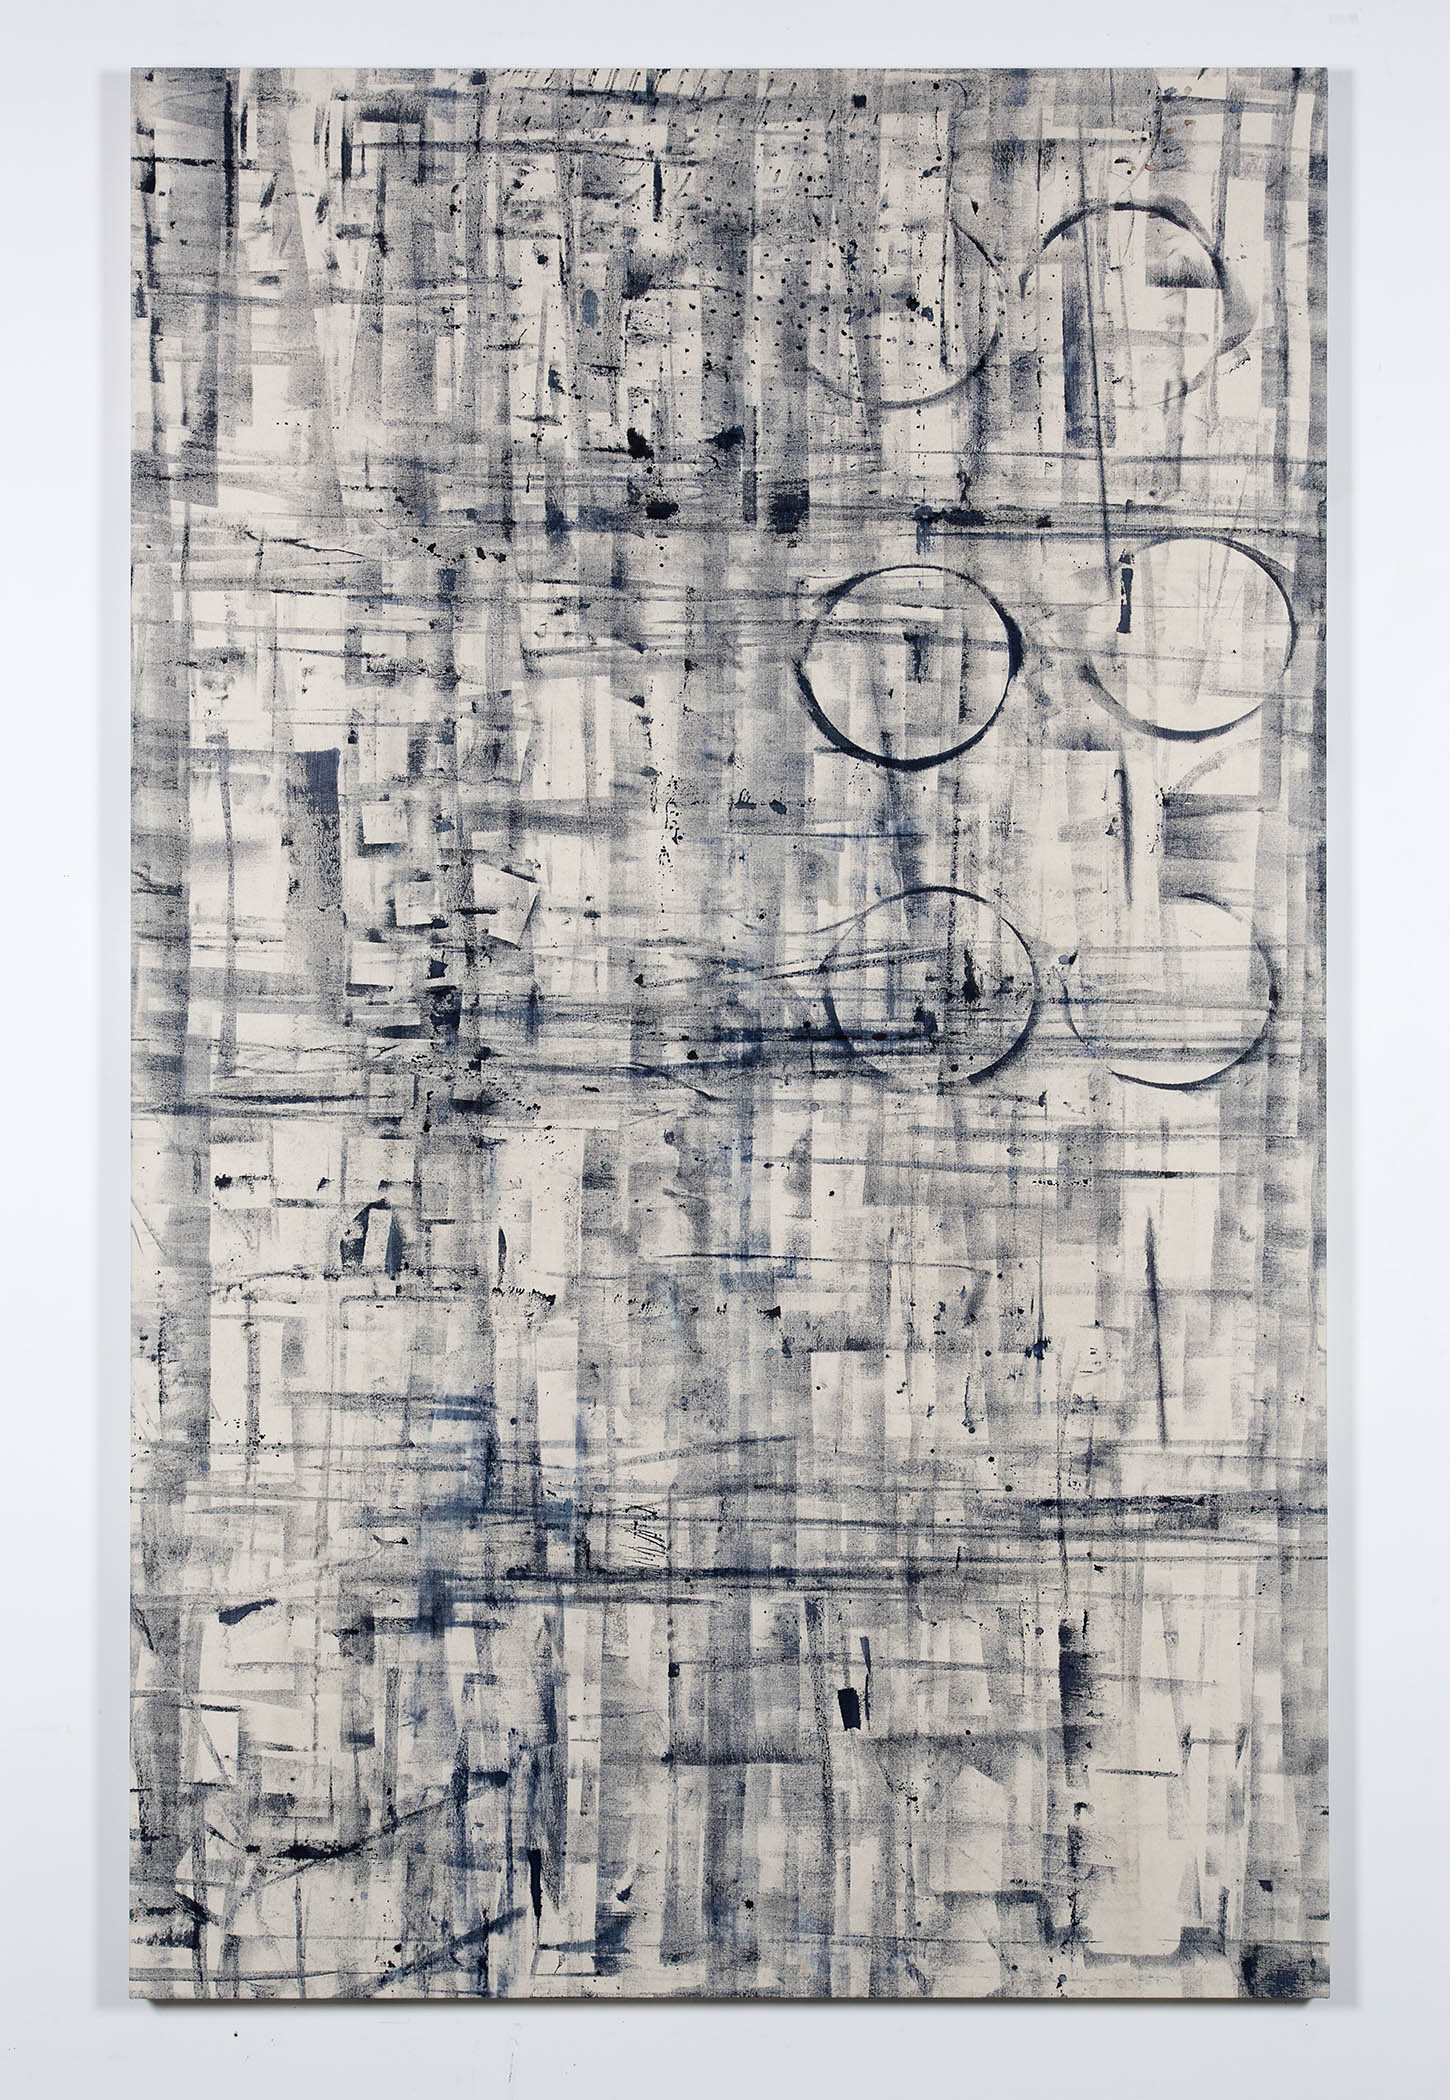 Marginalis (Los Angeles, California, May 1–August 1, 2014)    2014   Cyanotype chemistry on canvas  89 x 55 inches   Cyanotype Paintings, 2013–2015